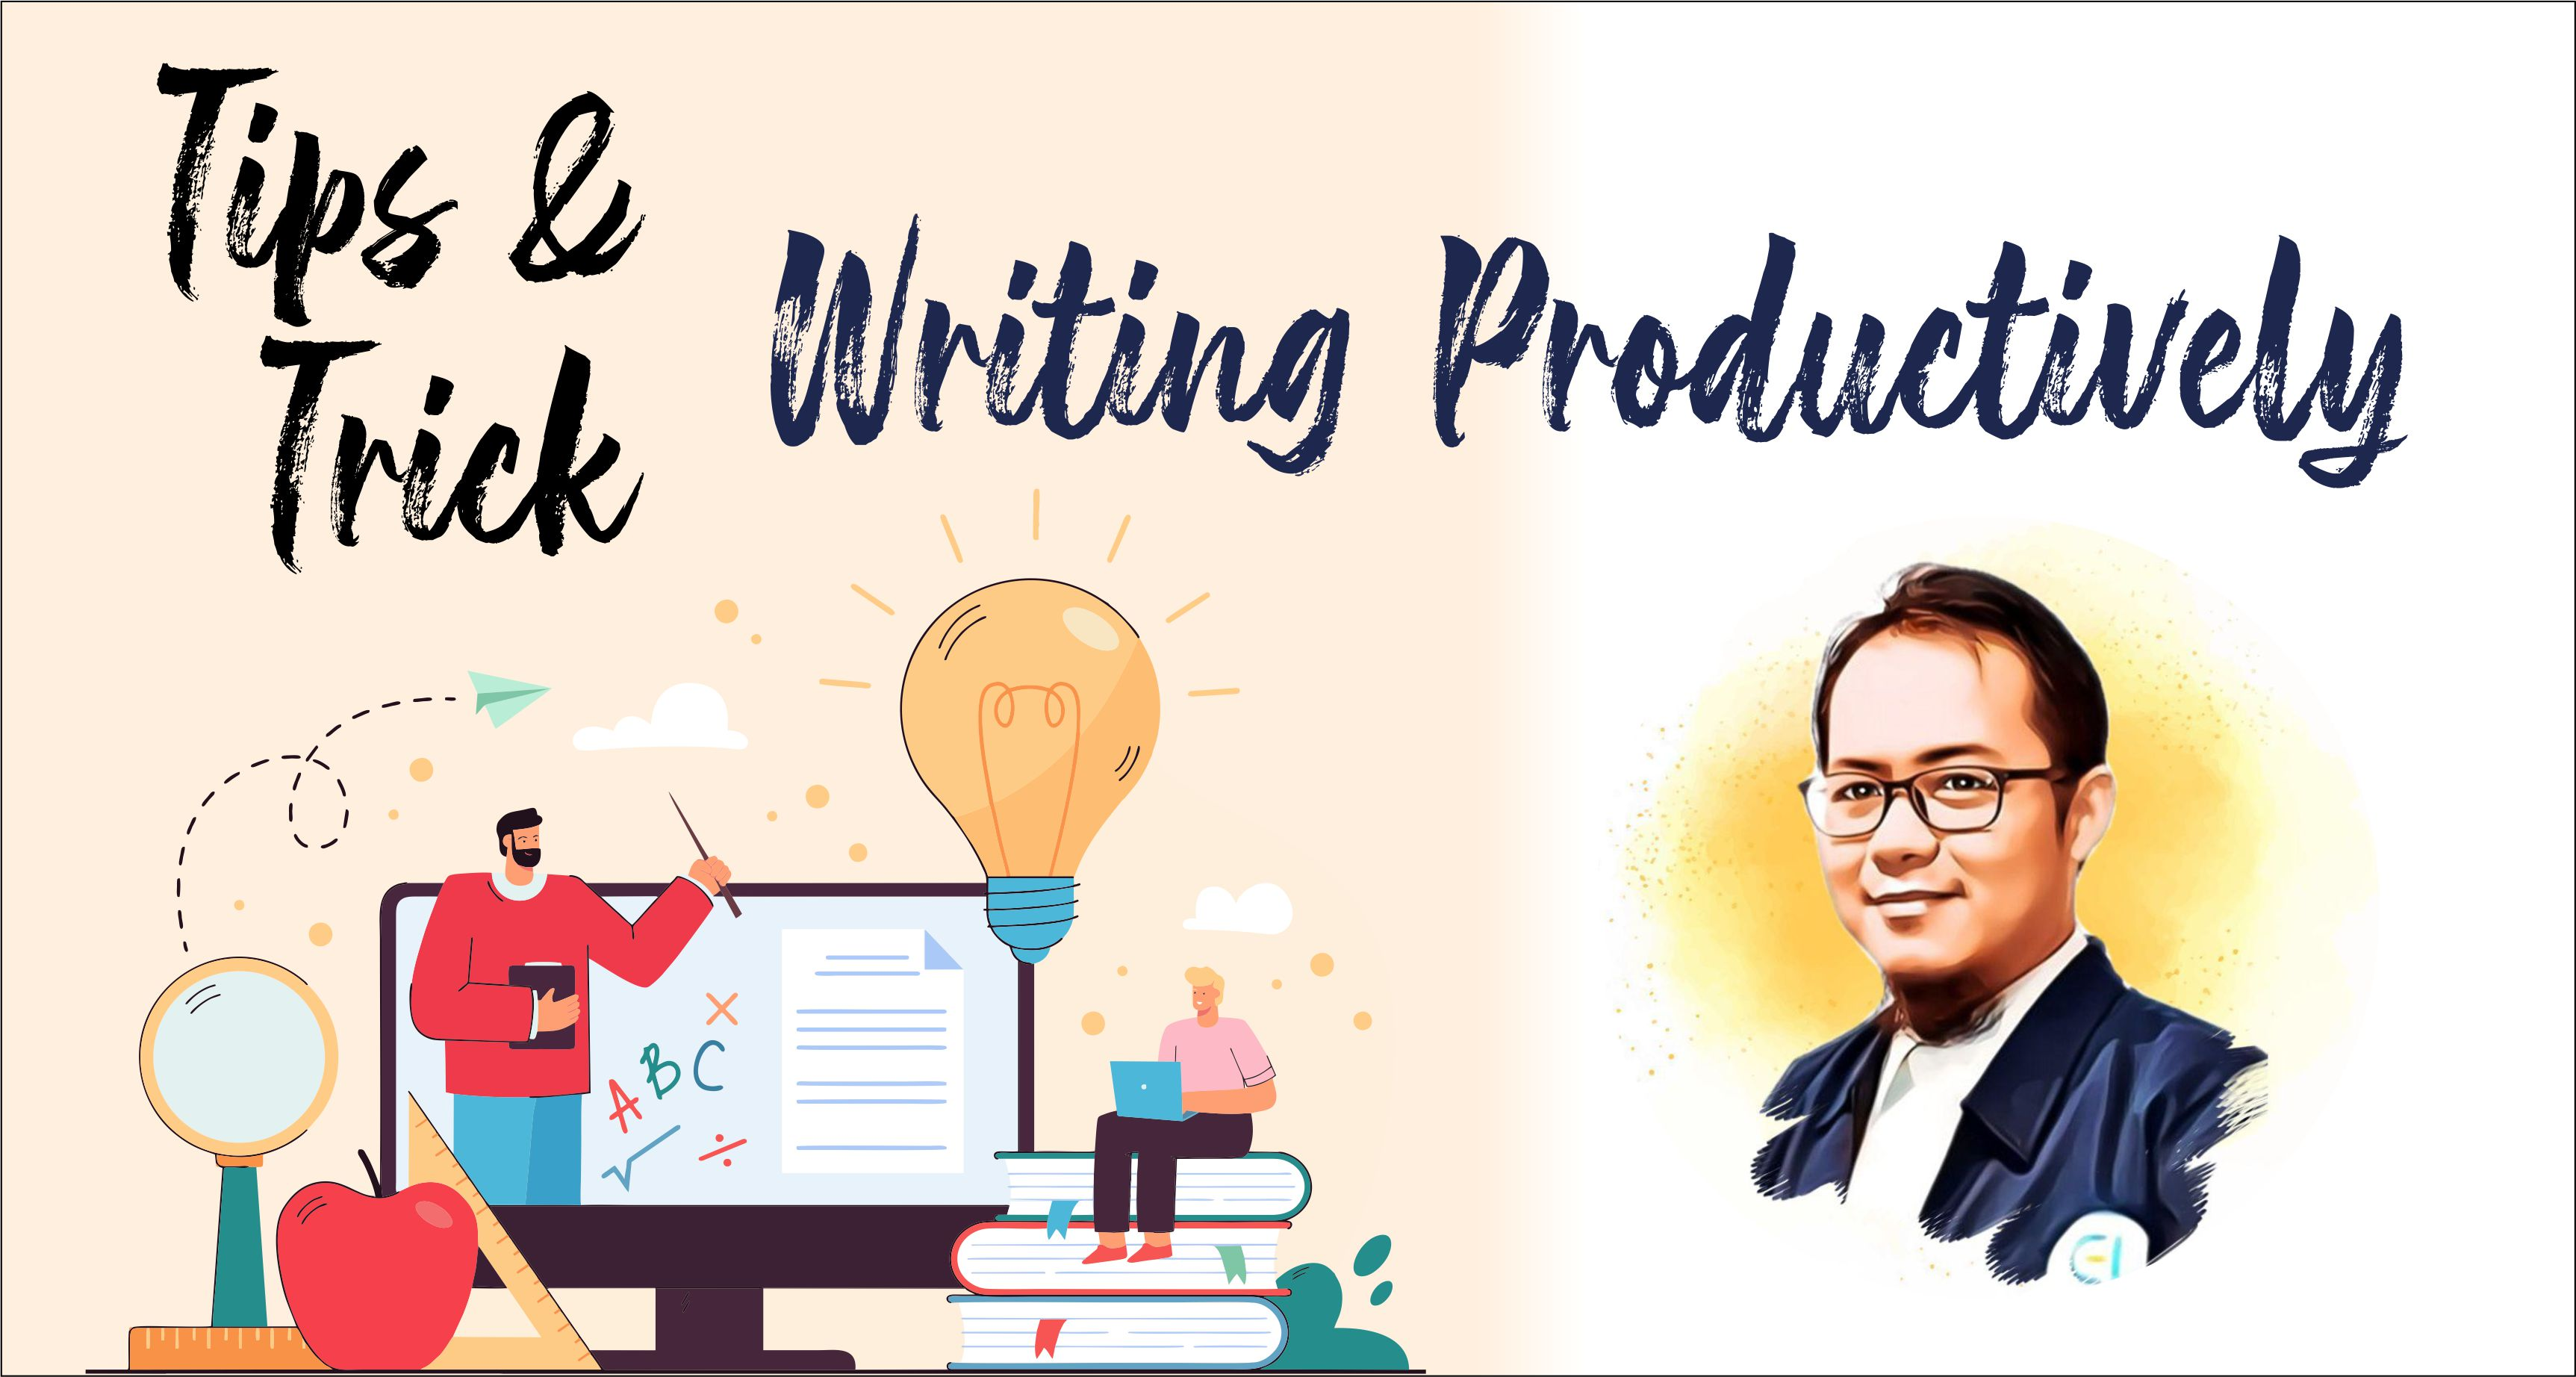 Tips & Trick to Writing Productively